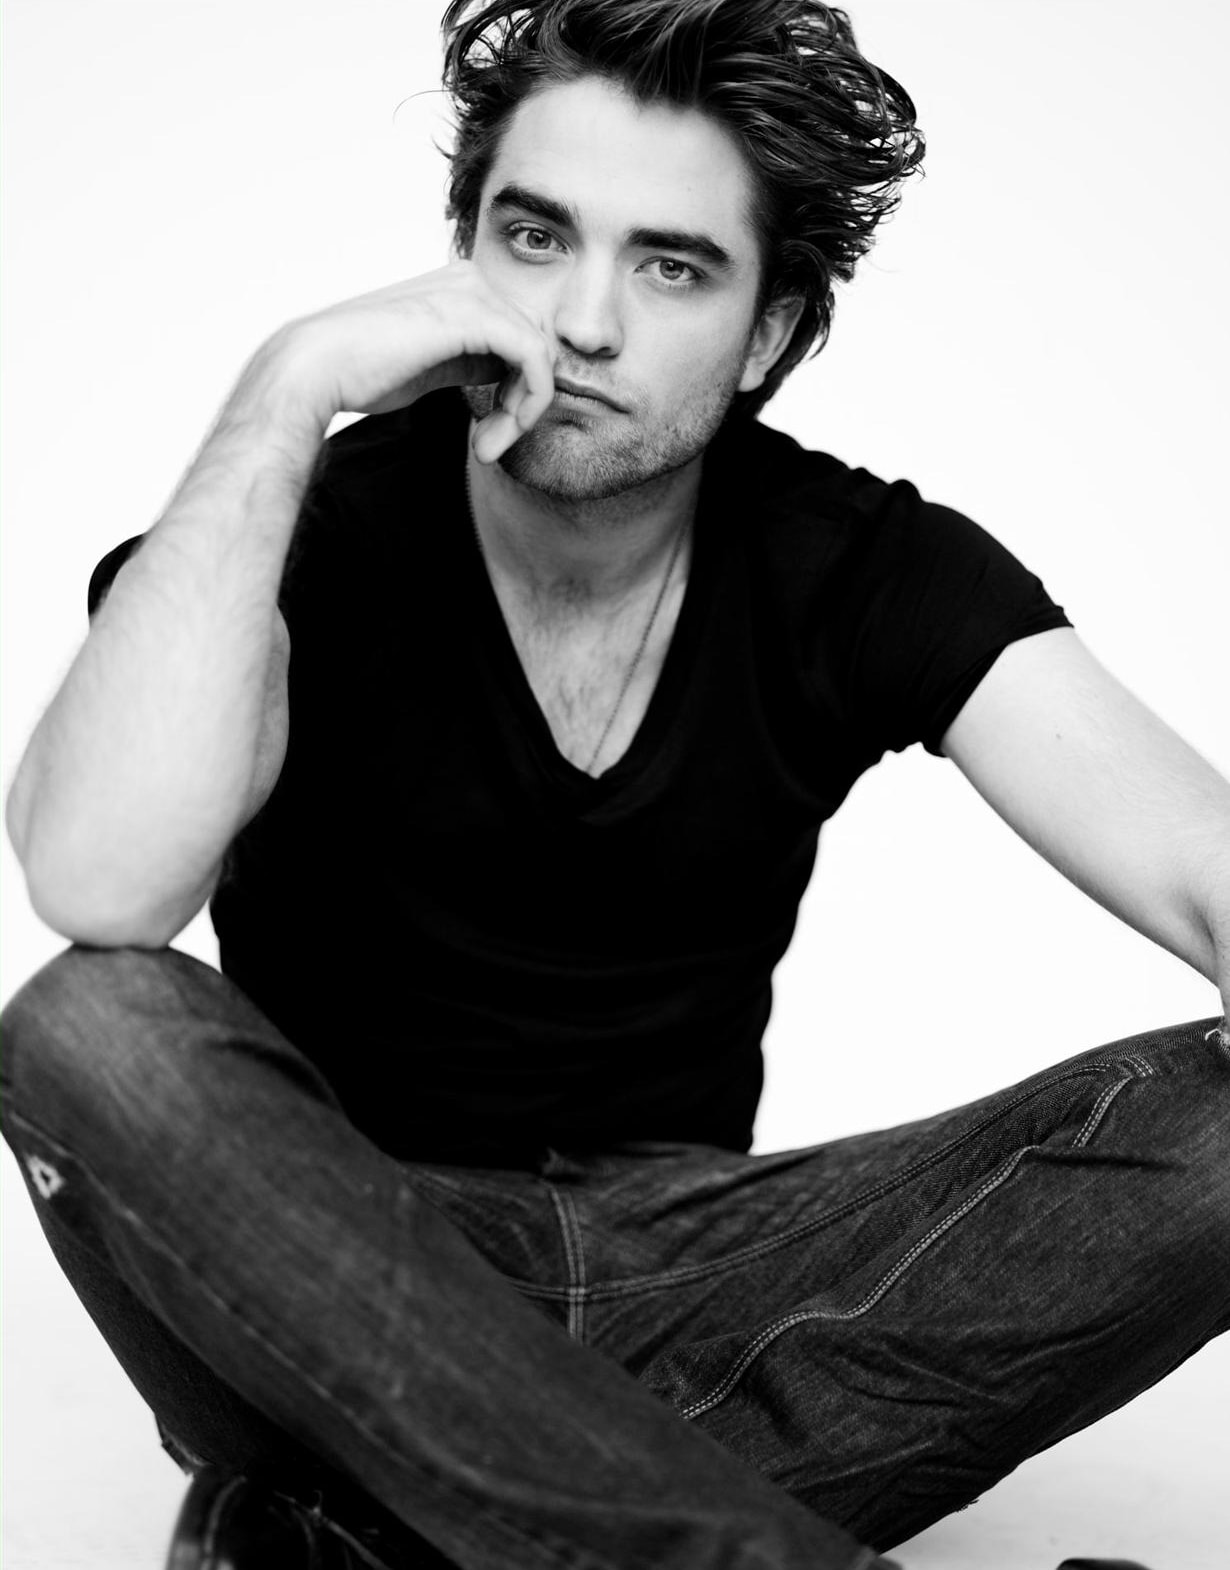 Robert Pattinson For mobile